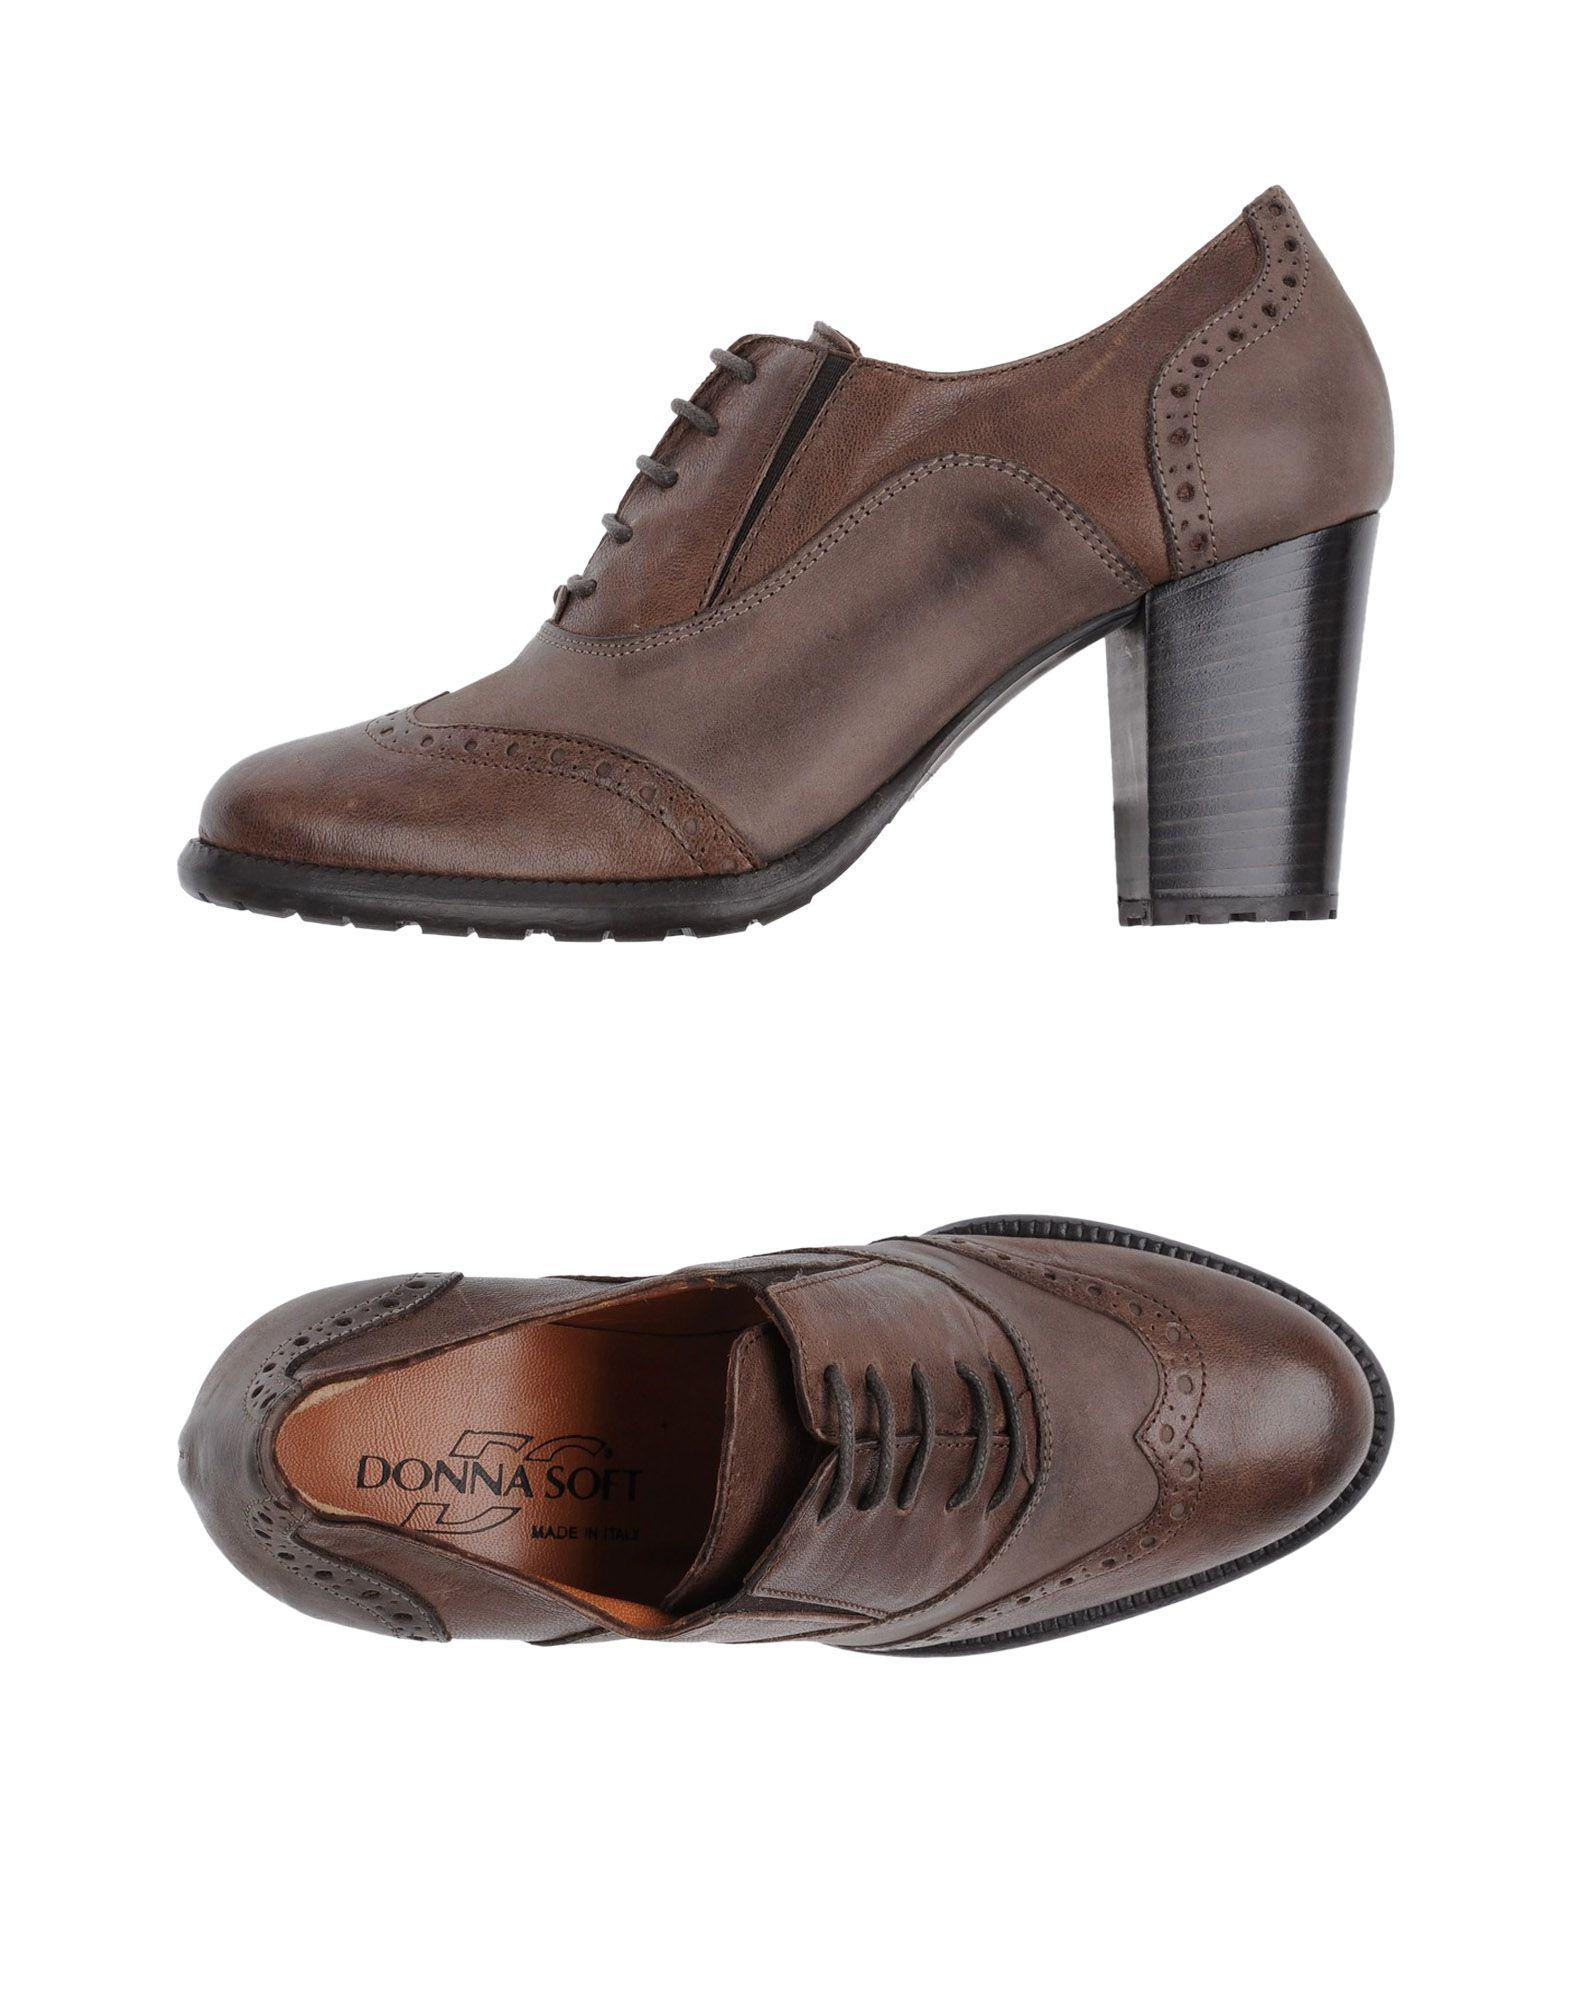 FOOTWEAR - Lace-up shoes Donna Soft VlMrP